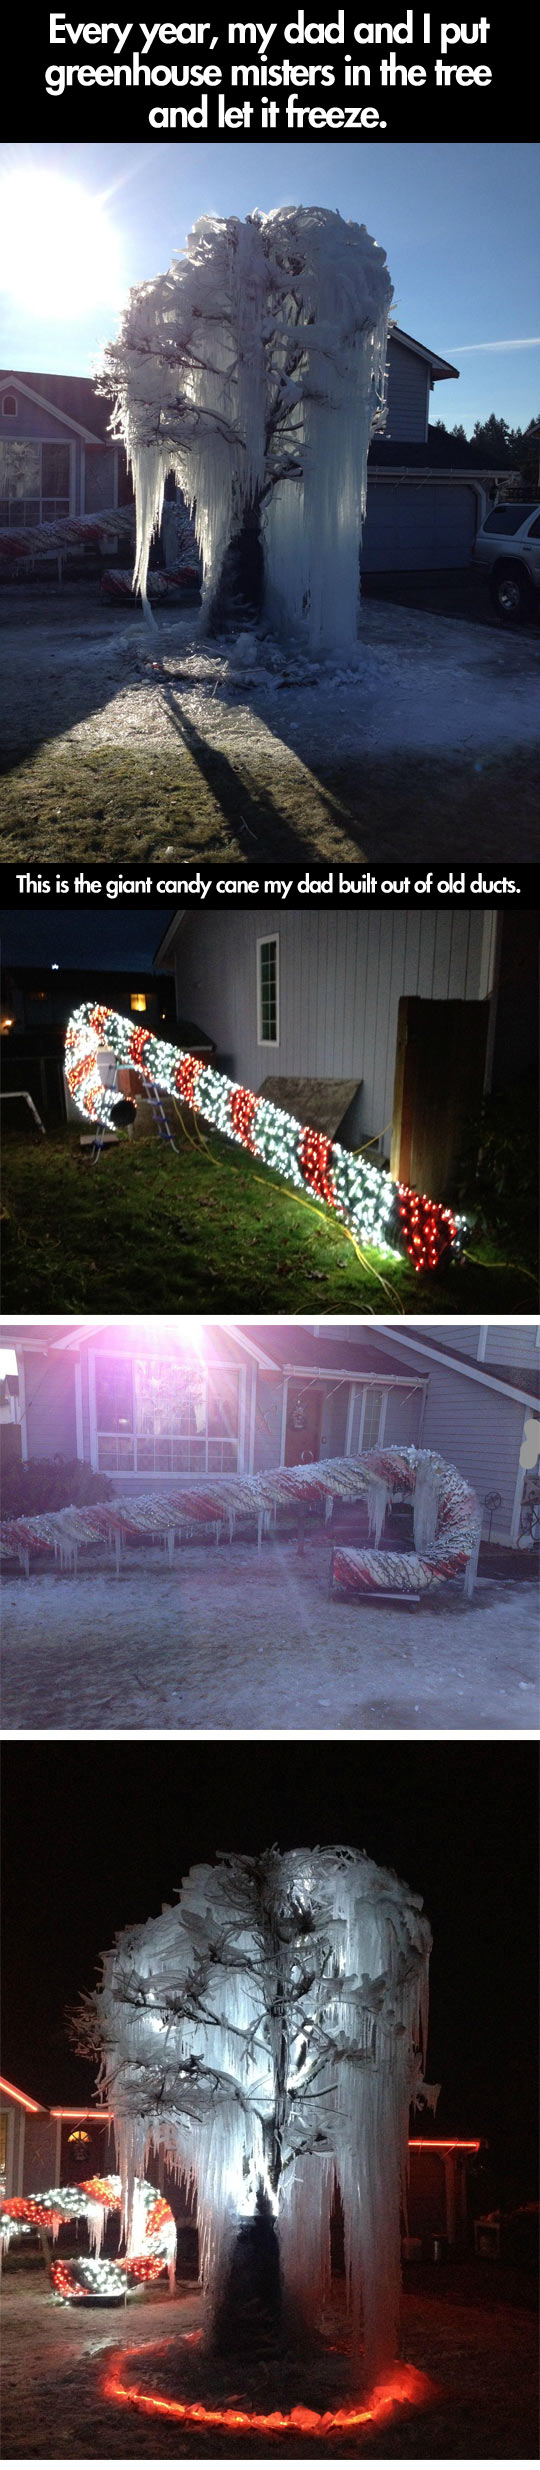 Awesome decoration for Christmas...